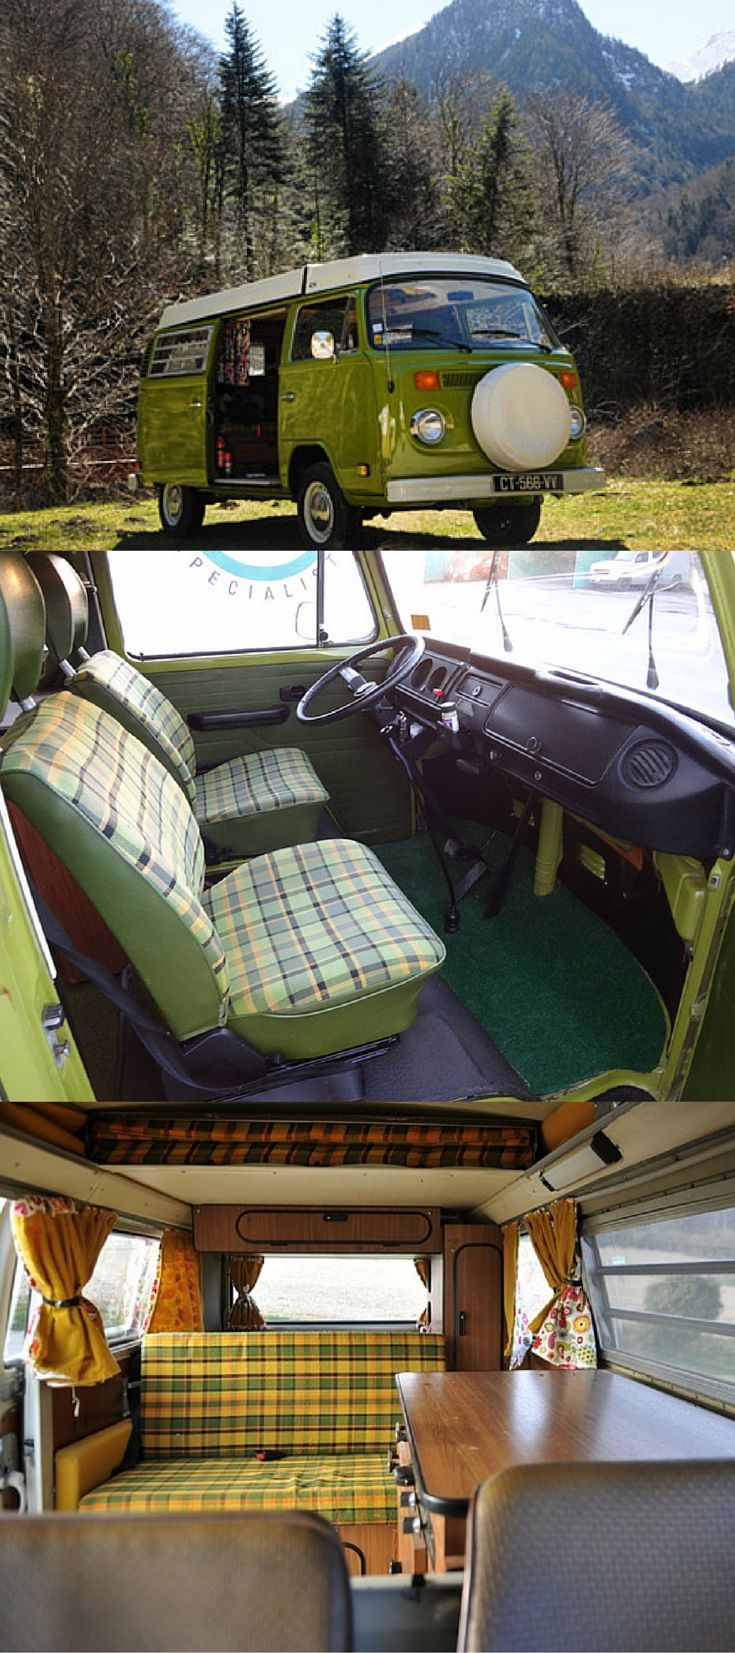 Camper Cars Best 25 Vw Camper Ideas On Pinterest Vw Camper Bus Vw Camper